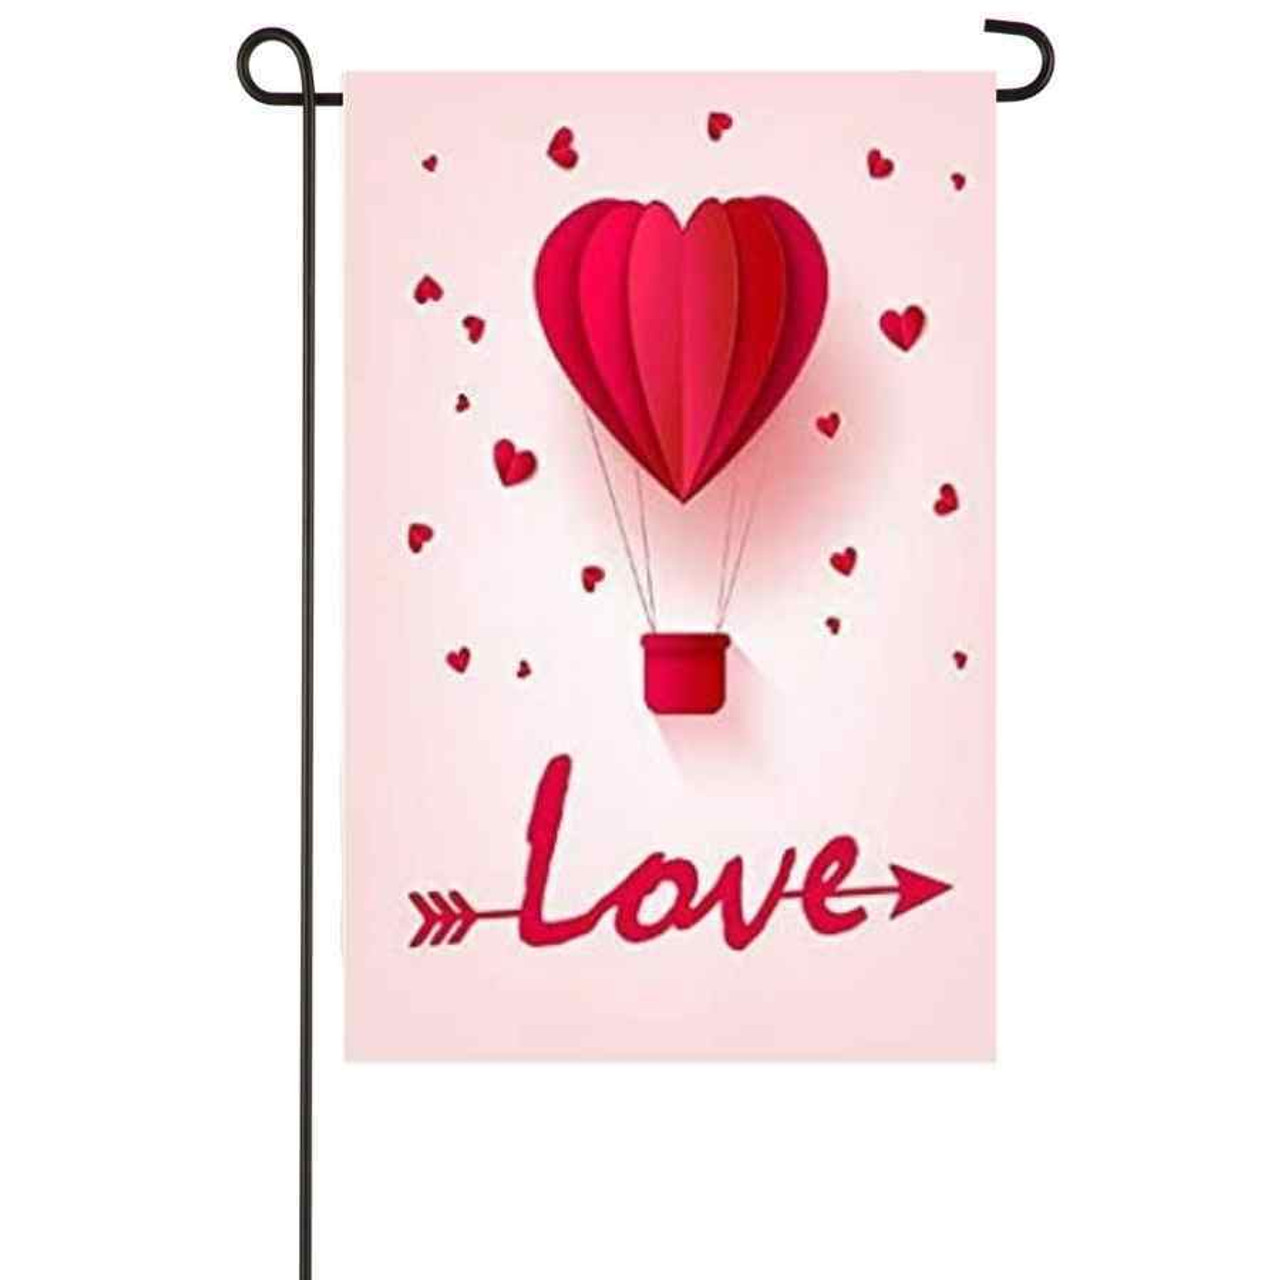 """A light pink garden flag. The middle has a hot pink heart-shaped hot air balloon. """"Love"""" is written on the bottom of the flag with an arrow through it. Small hot pink hearts are scattered around the background."""